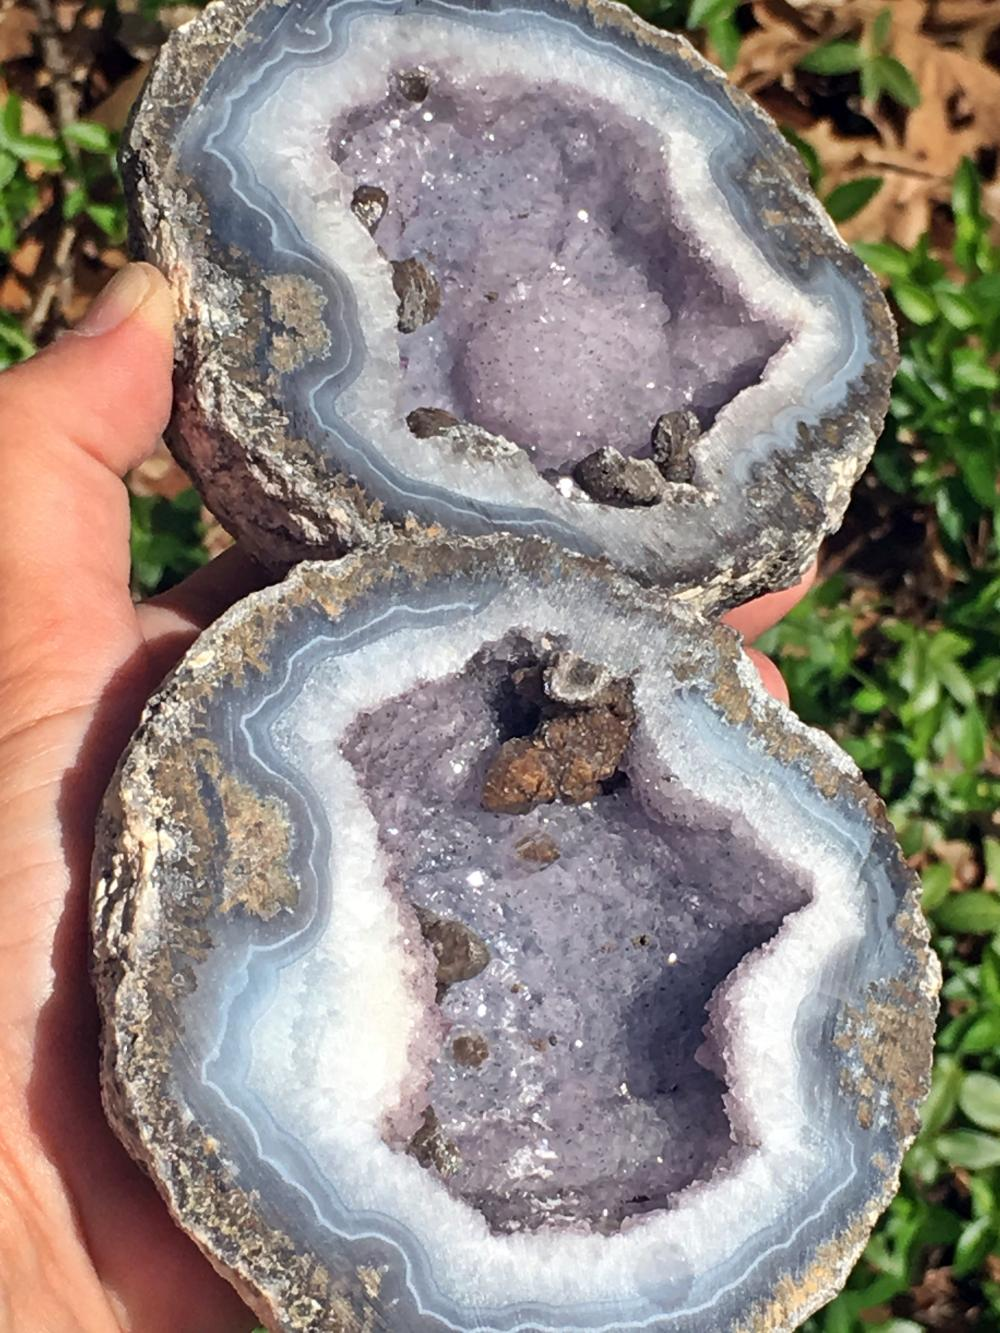 Lot 294: Geode, Rock, Crystal, Natural, Collectible, Mineral, Specimen